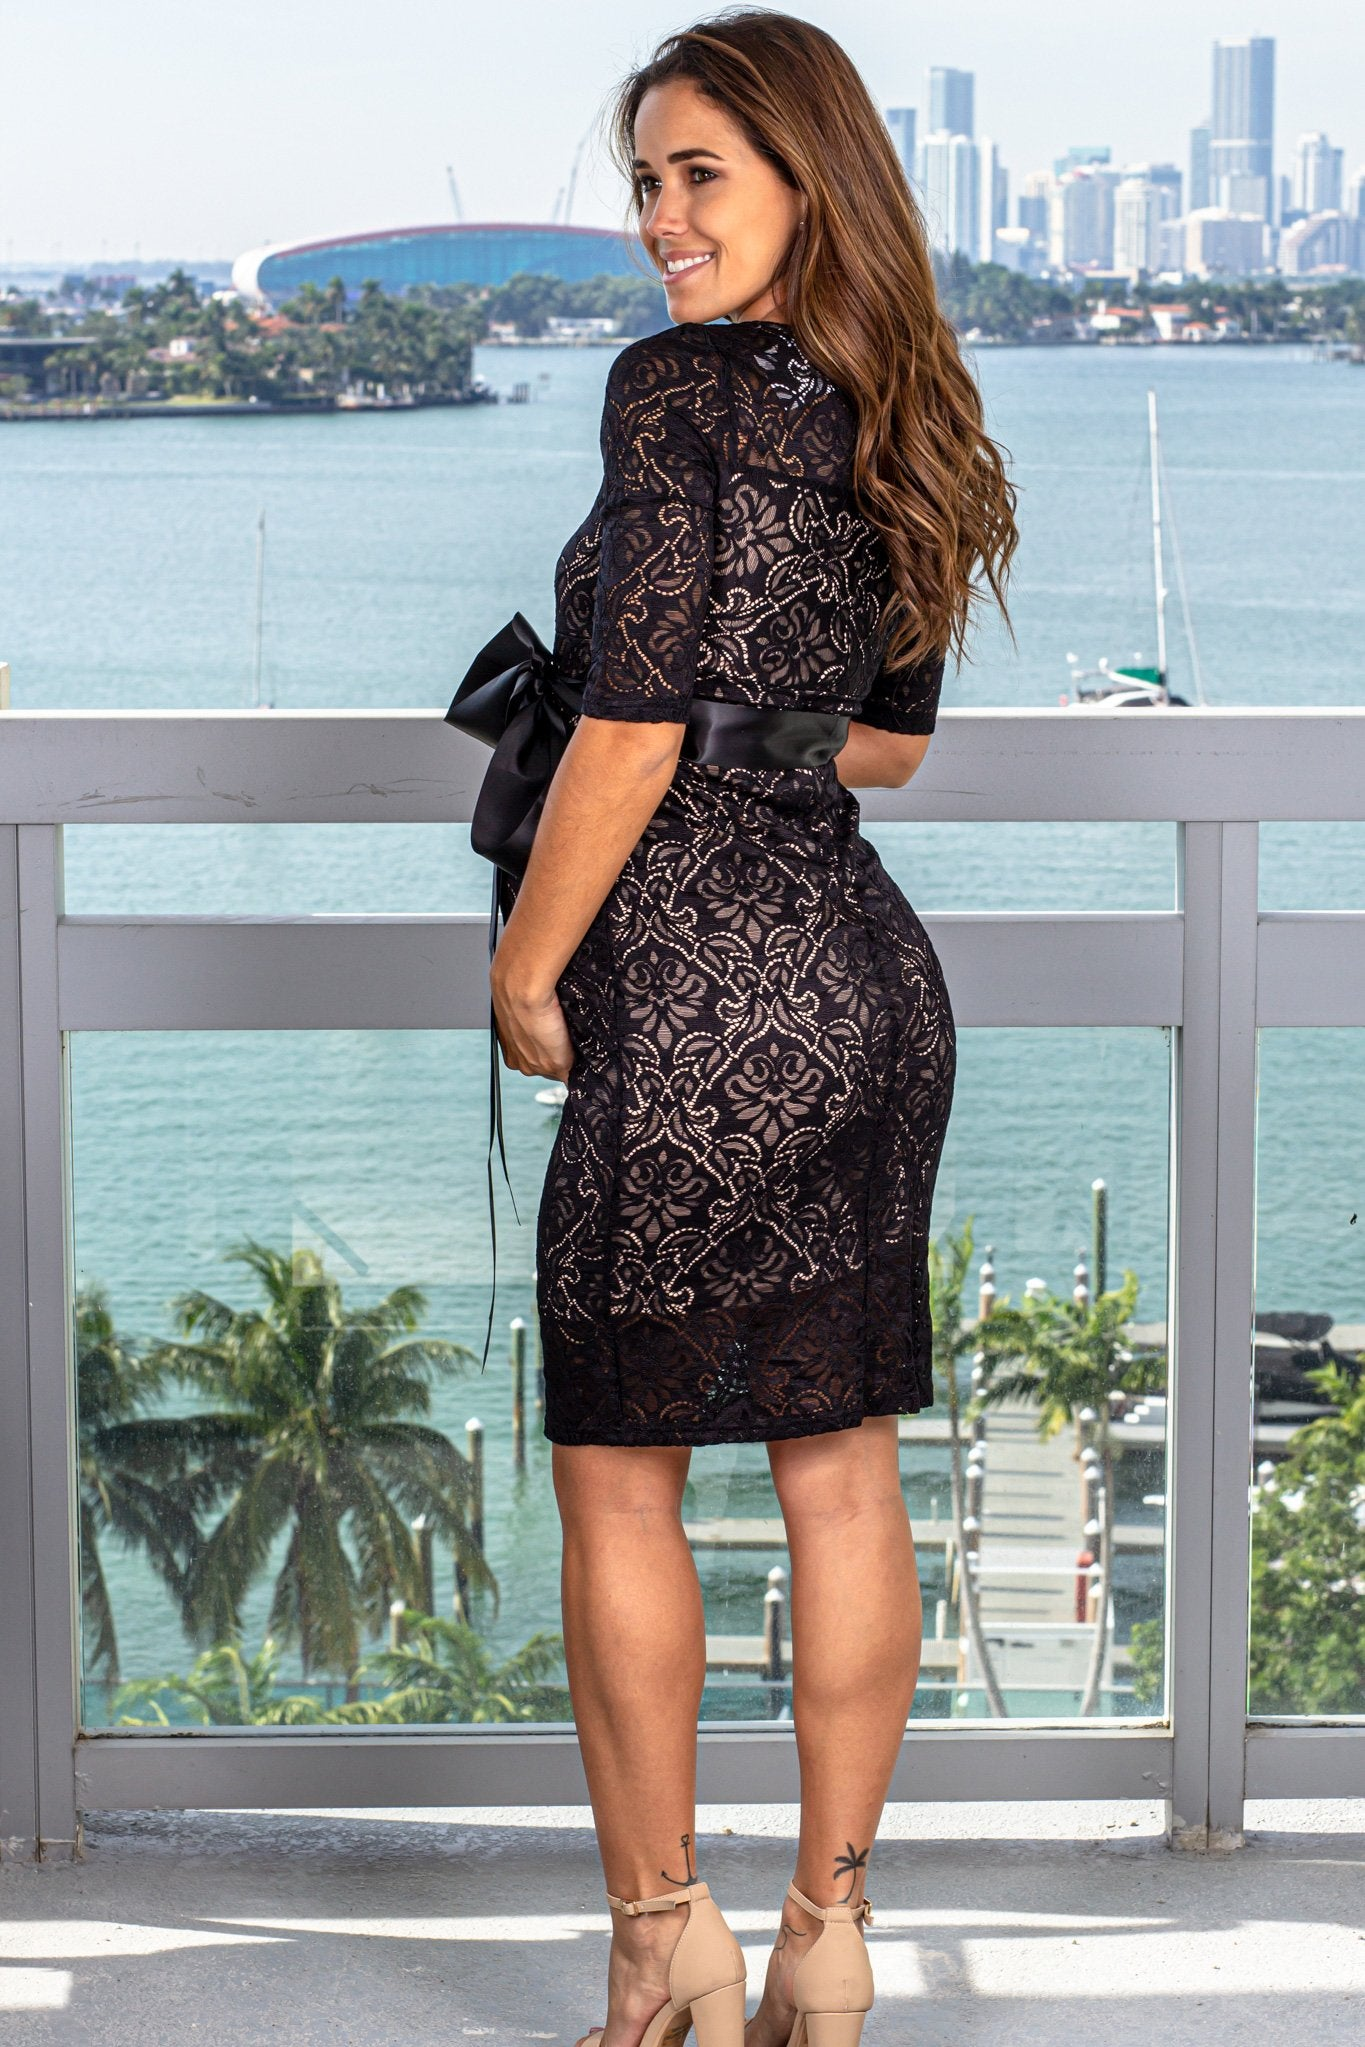 Black and Taupe Lace Short Dress